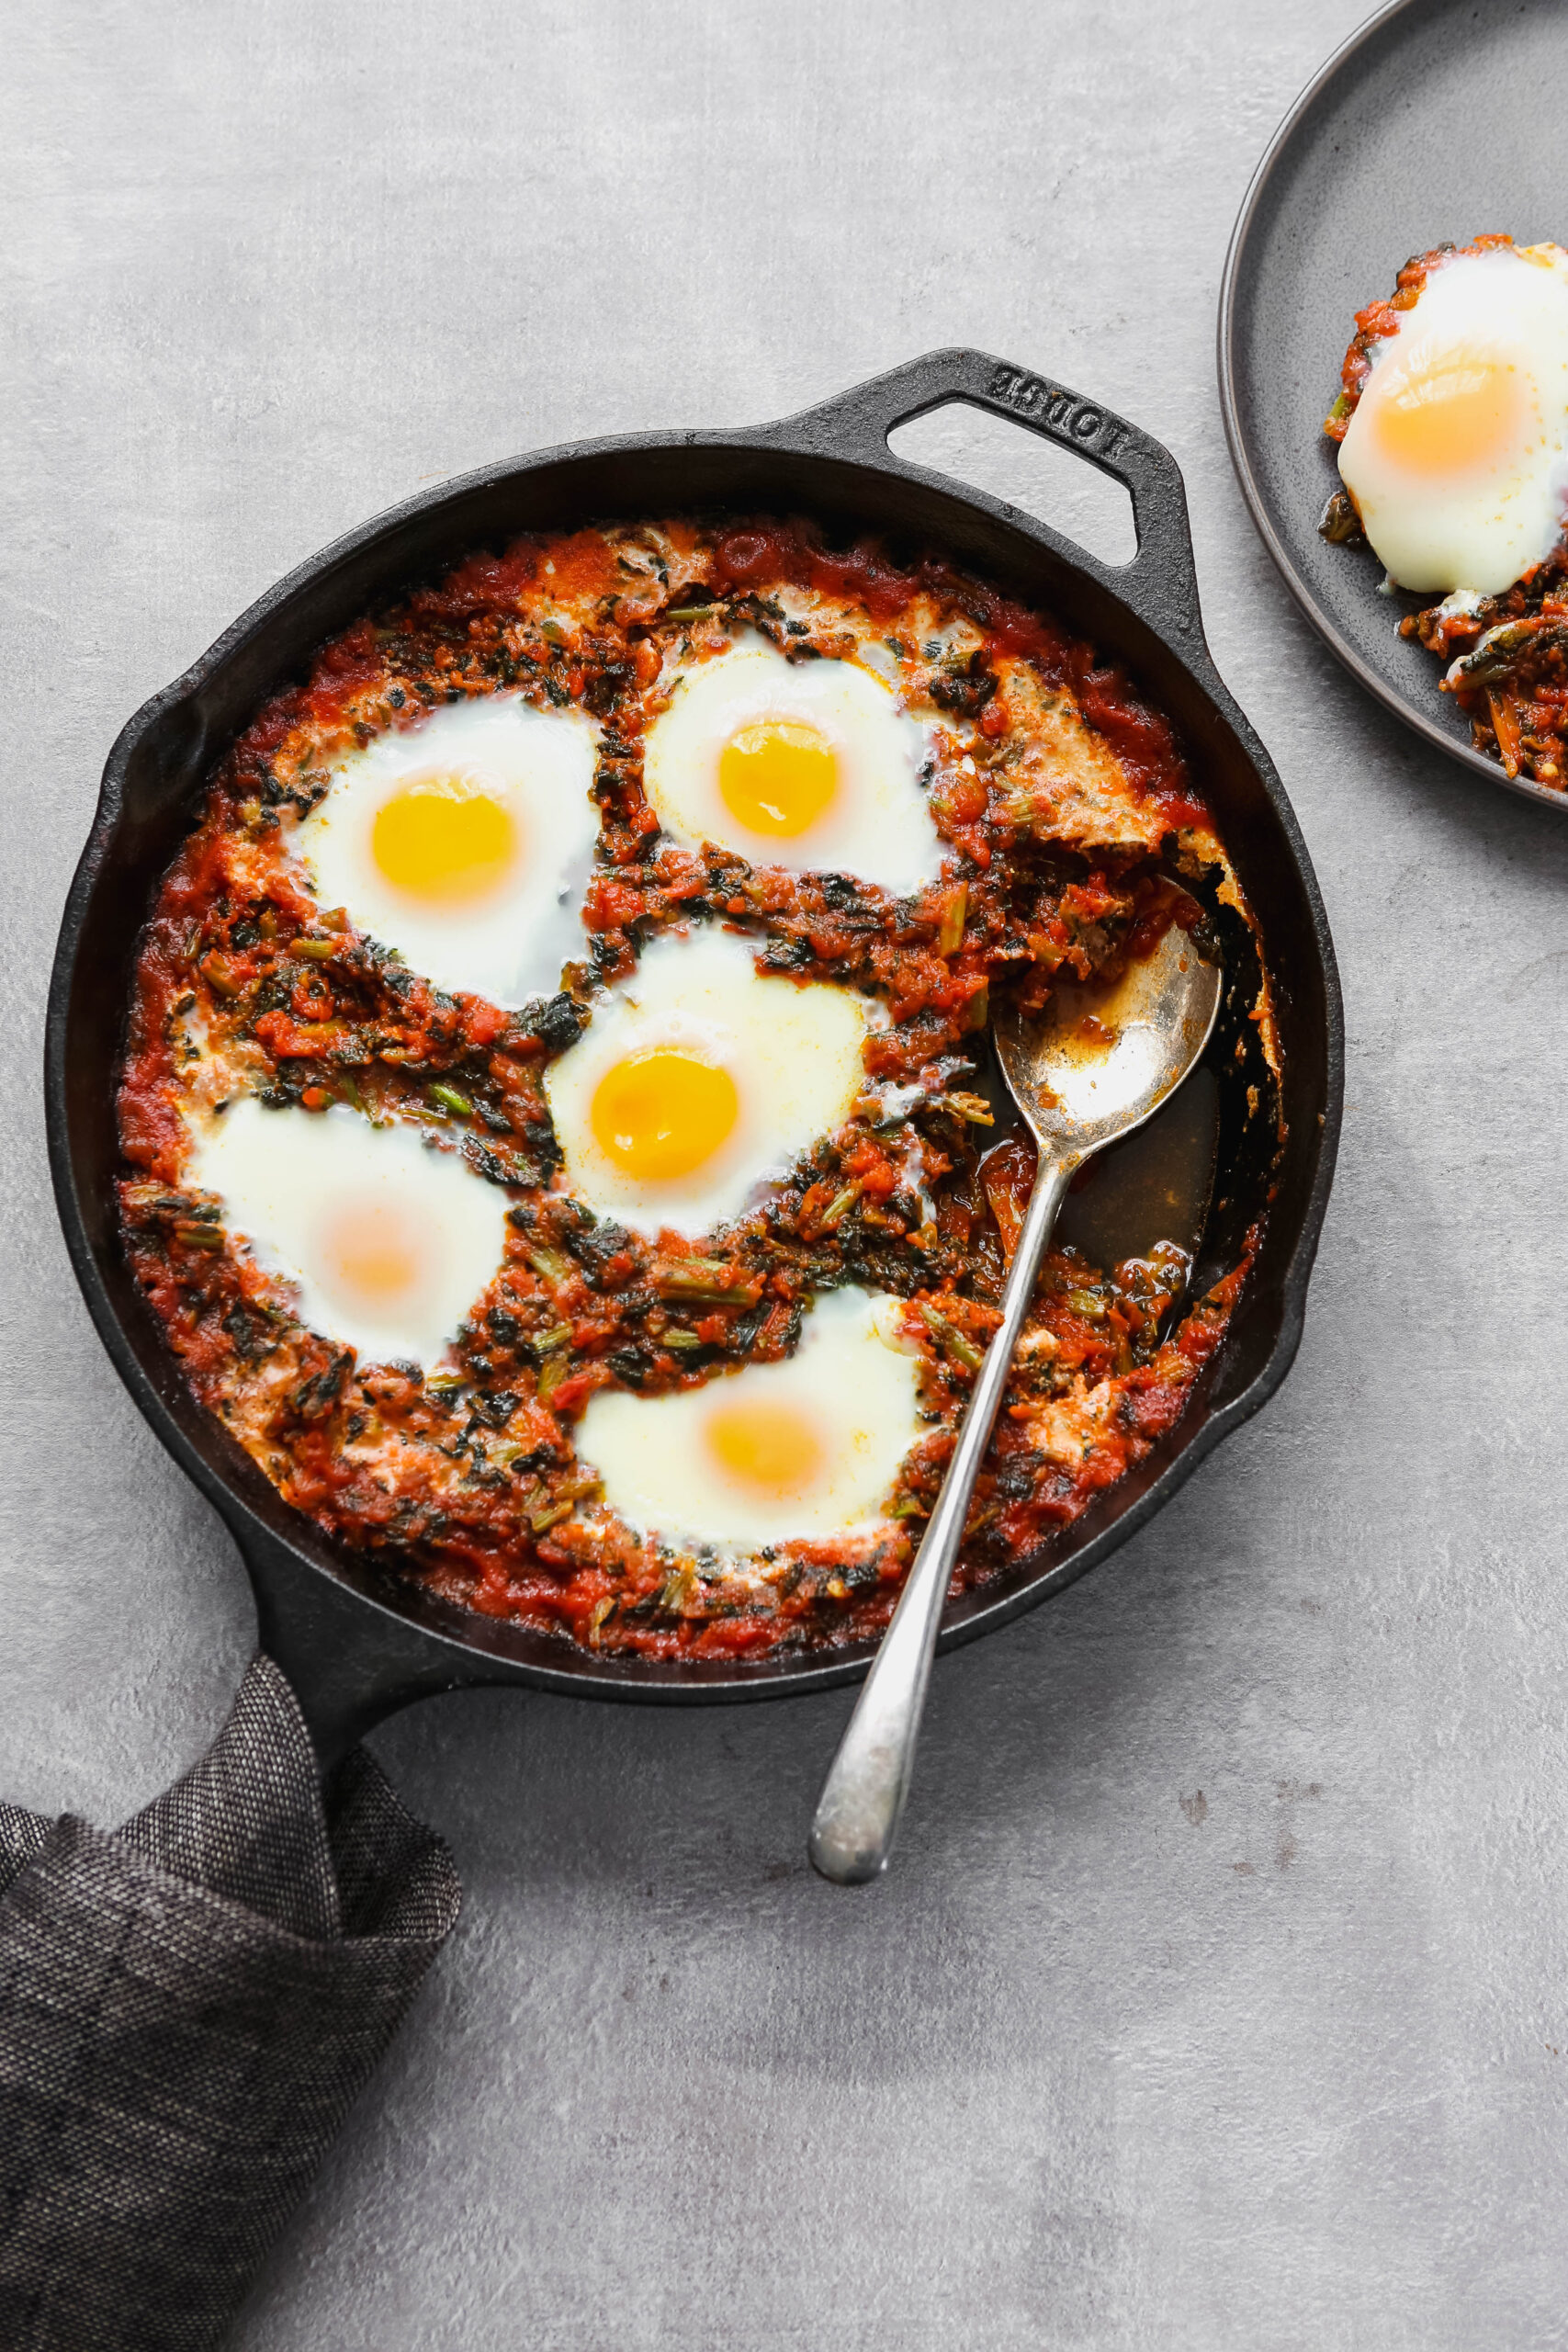 Baked eggs in tomato sauce in a cast-iron skillet.